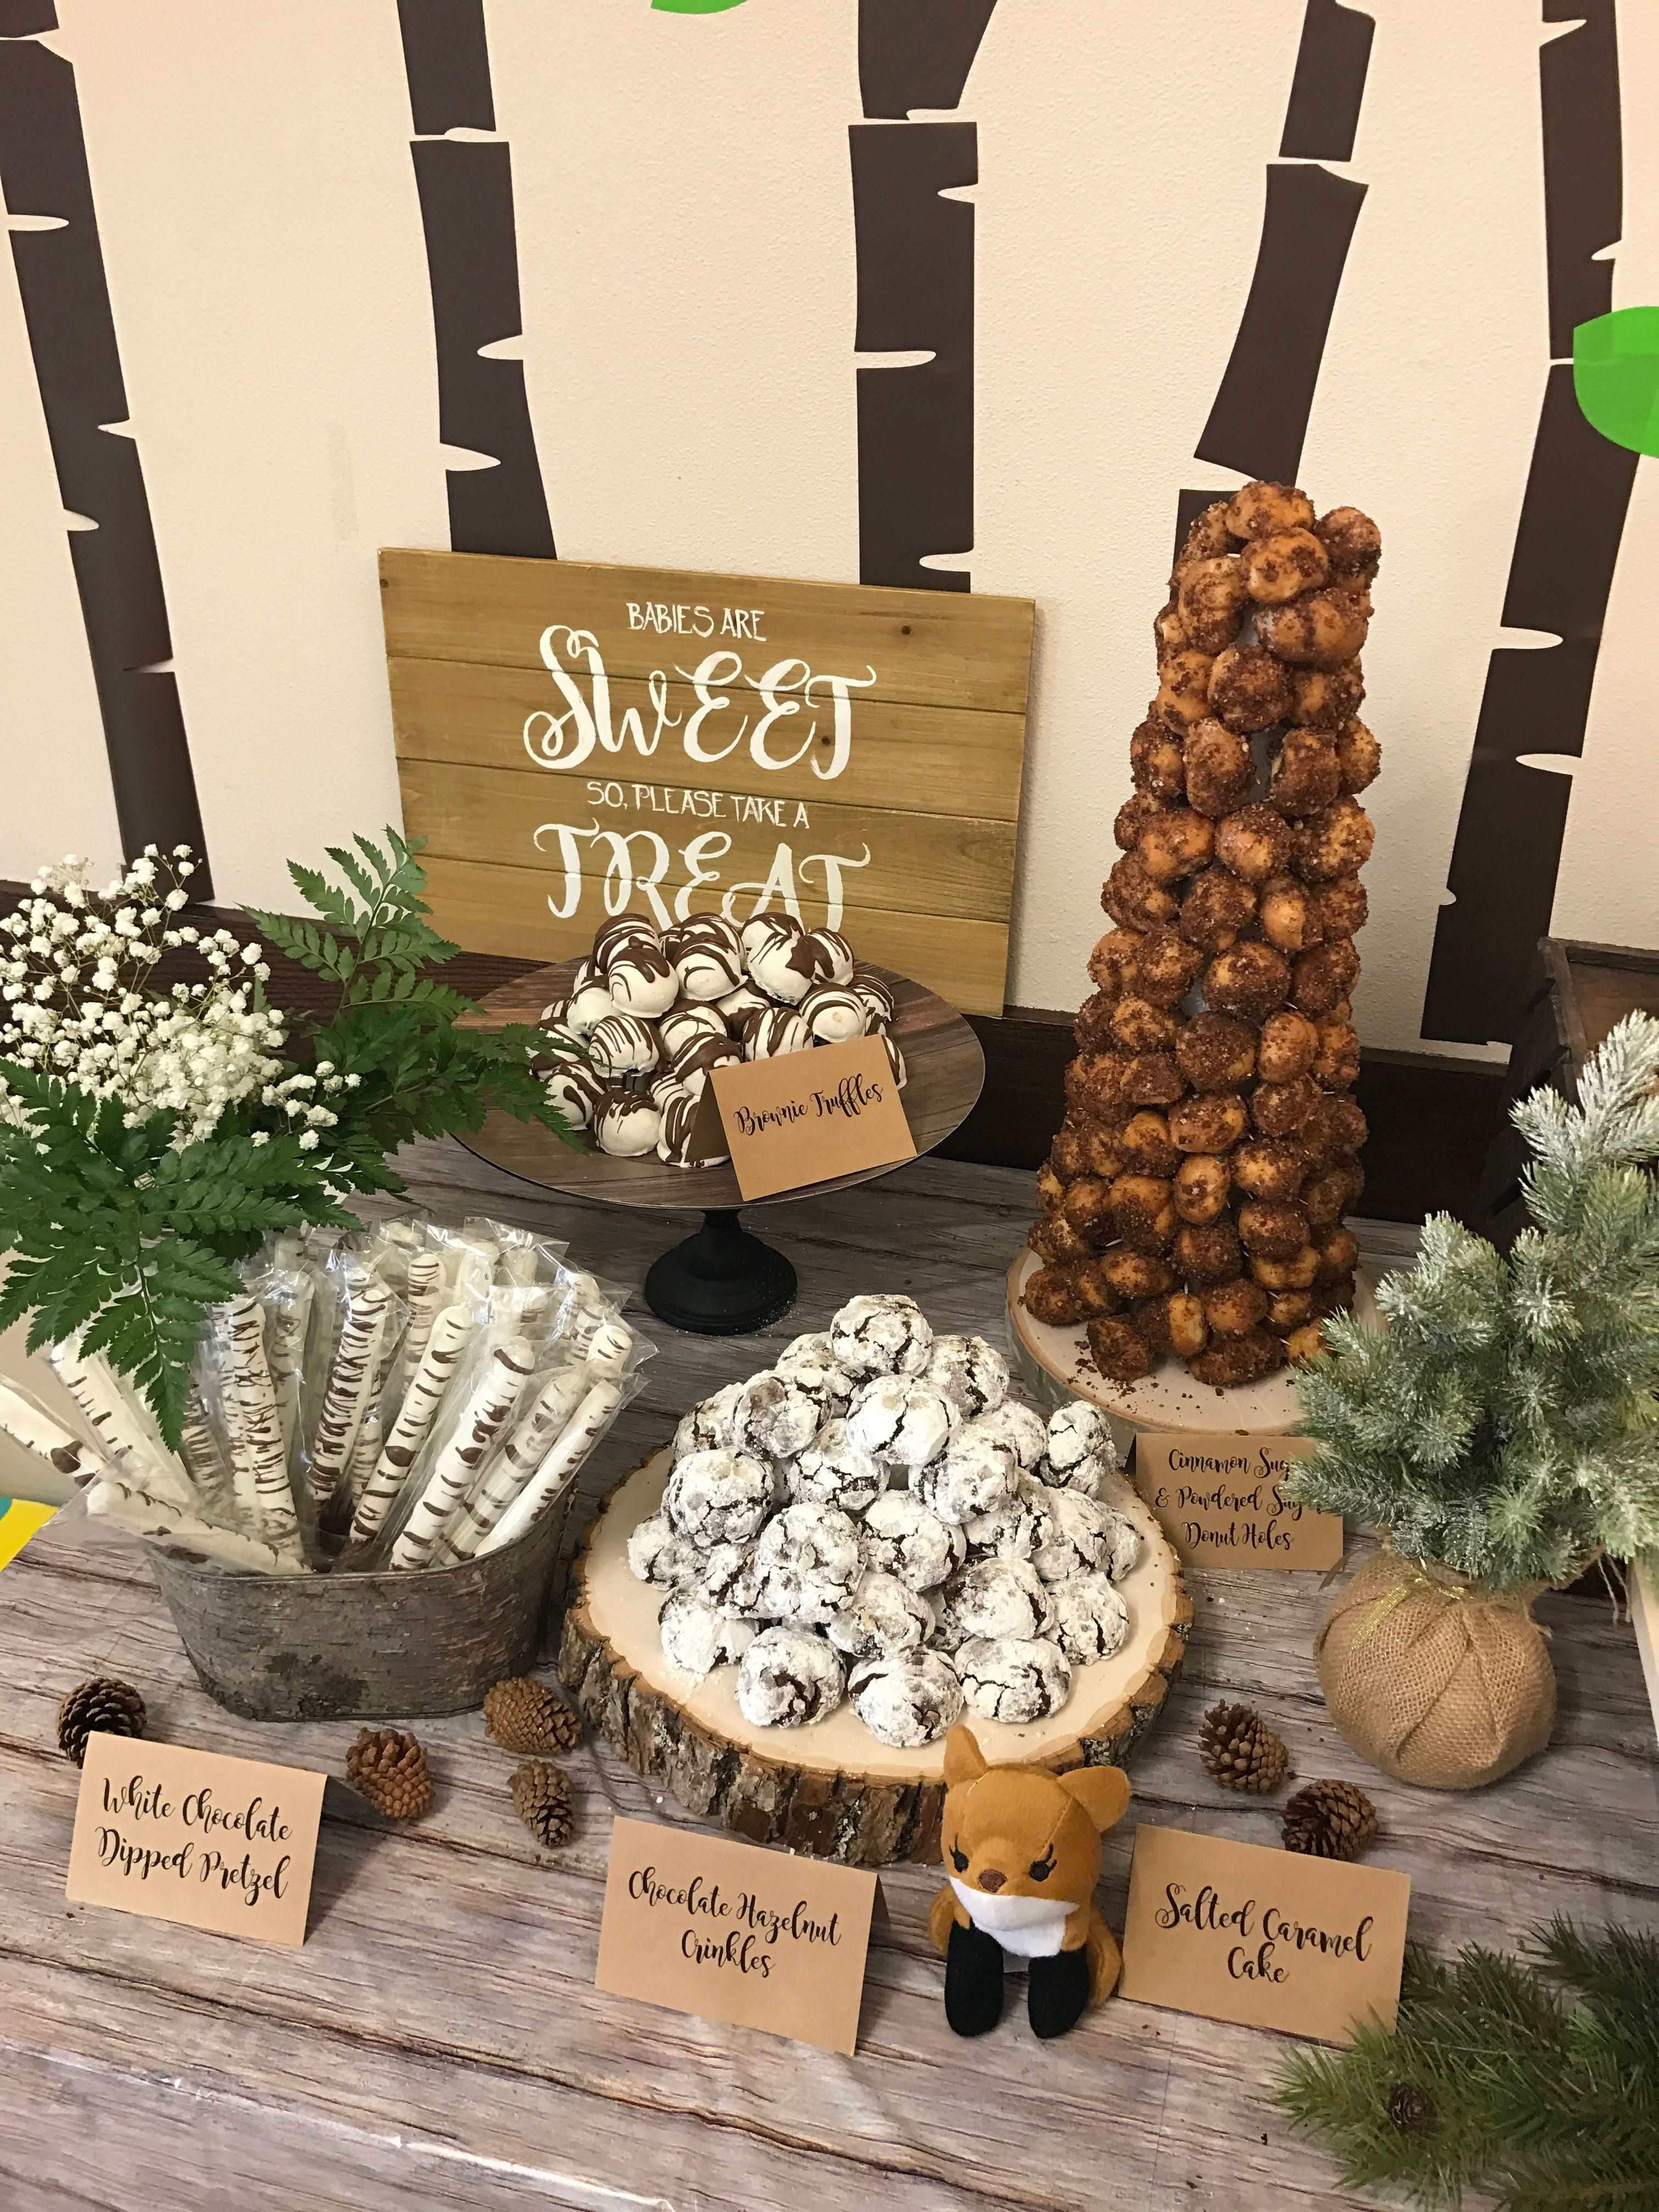 Woodland Theme Dessert Table With Crinkles Donut Croquembouche